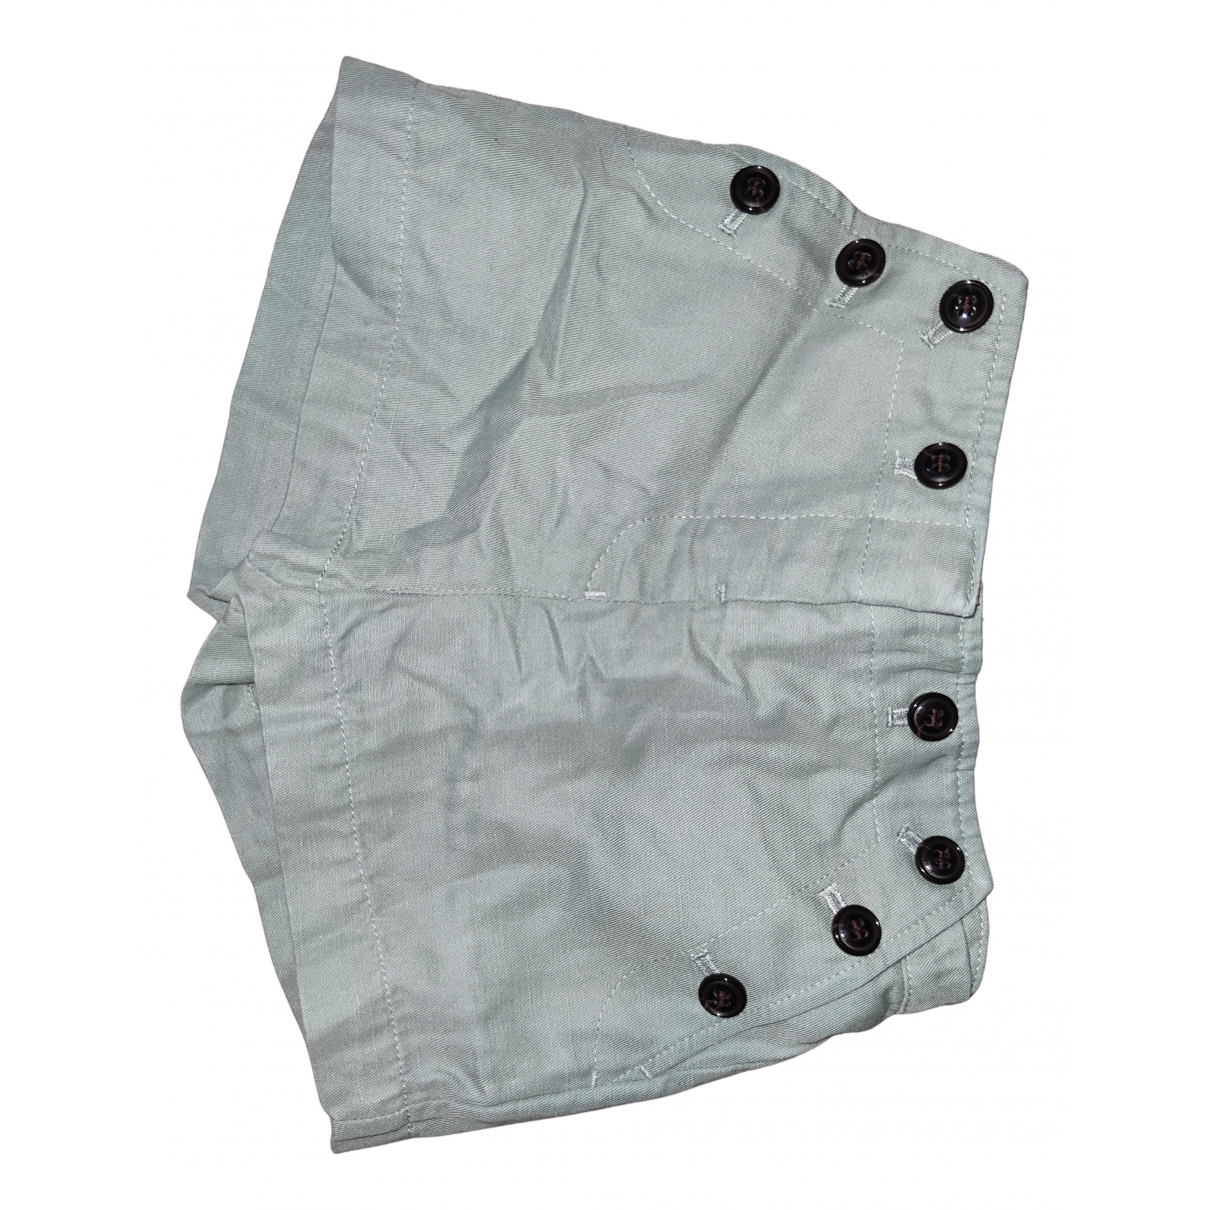 Burberry N Green Cotton Shorts for Kids 2 years - until 34 inches UK